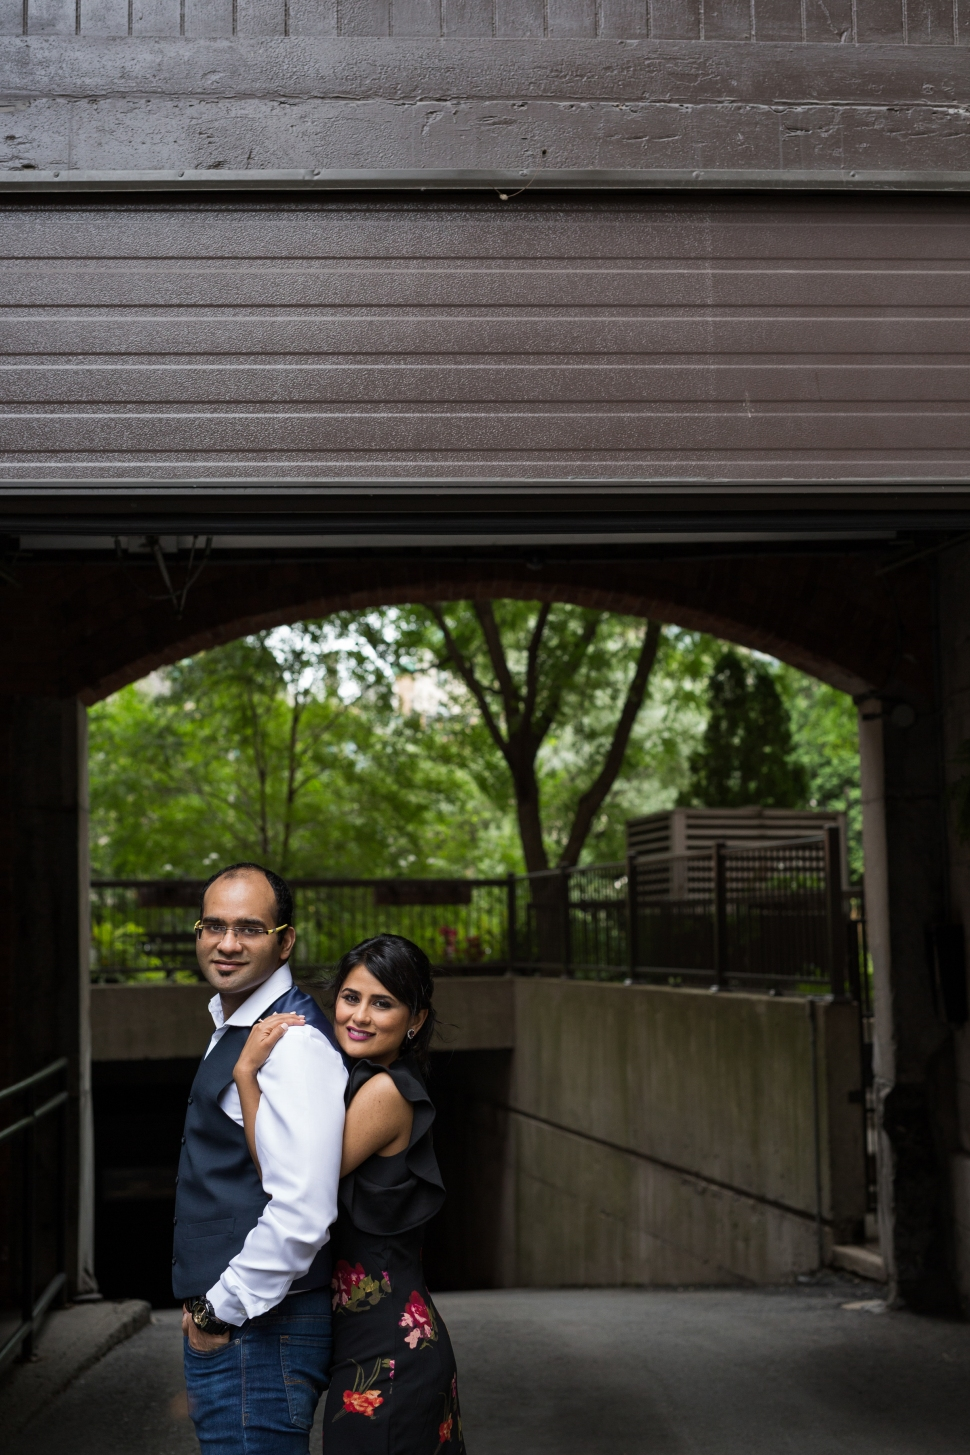 montreal_lifestyle_engagement_portraits_photographer_photography_photographe_fiancailles_ (13 of 15)